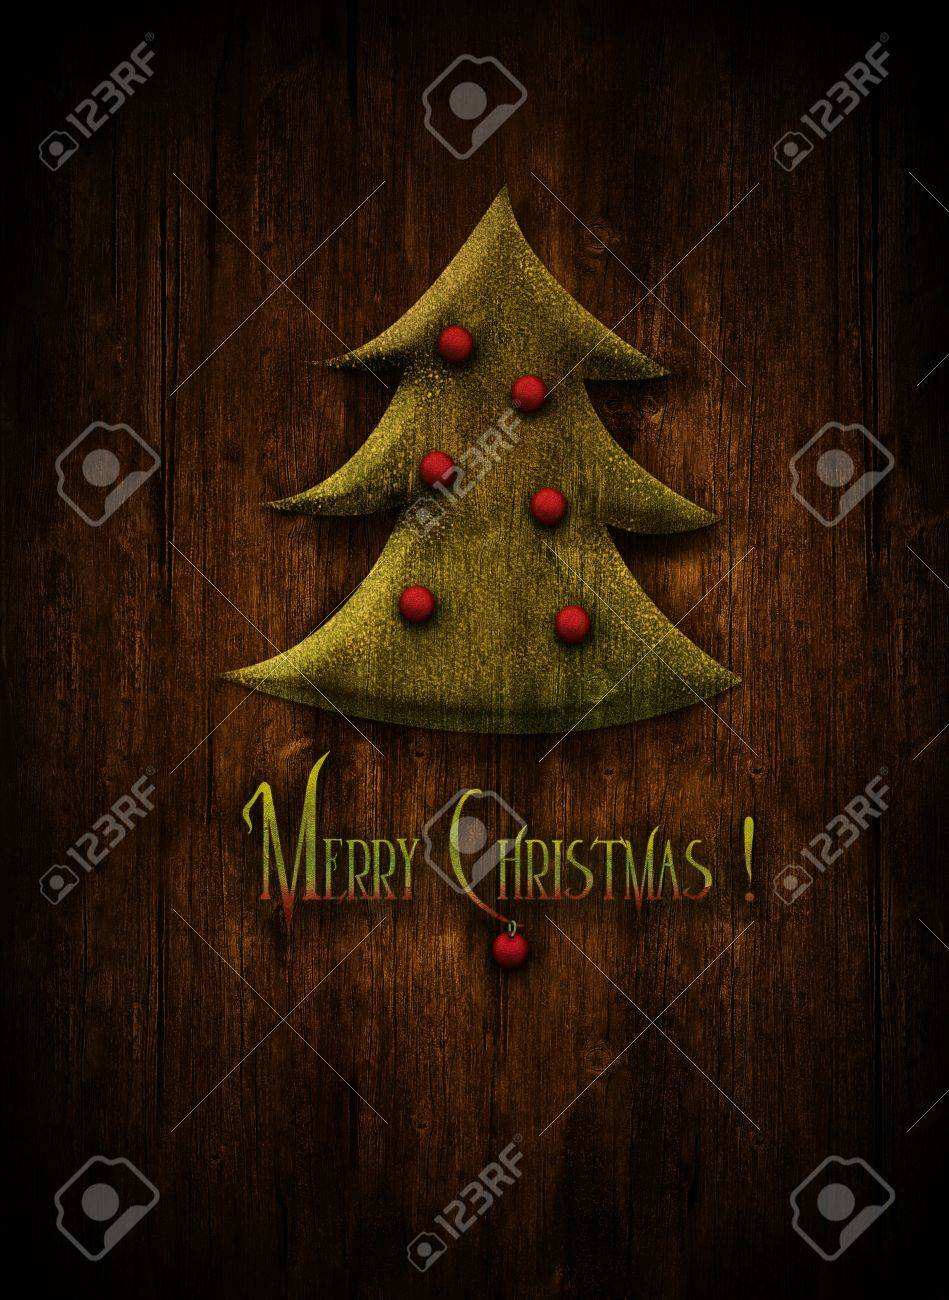 Rustic Christmas Wallpaper For Computer